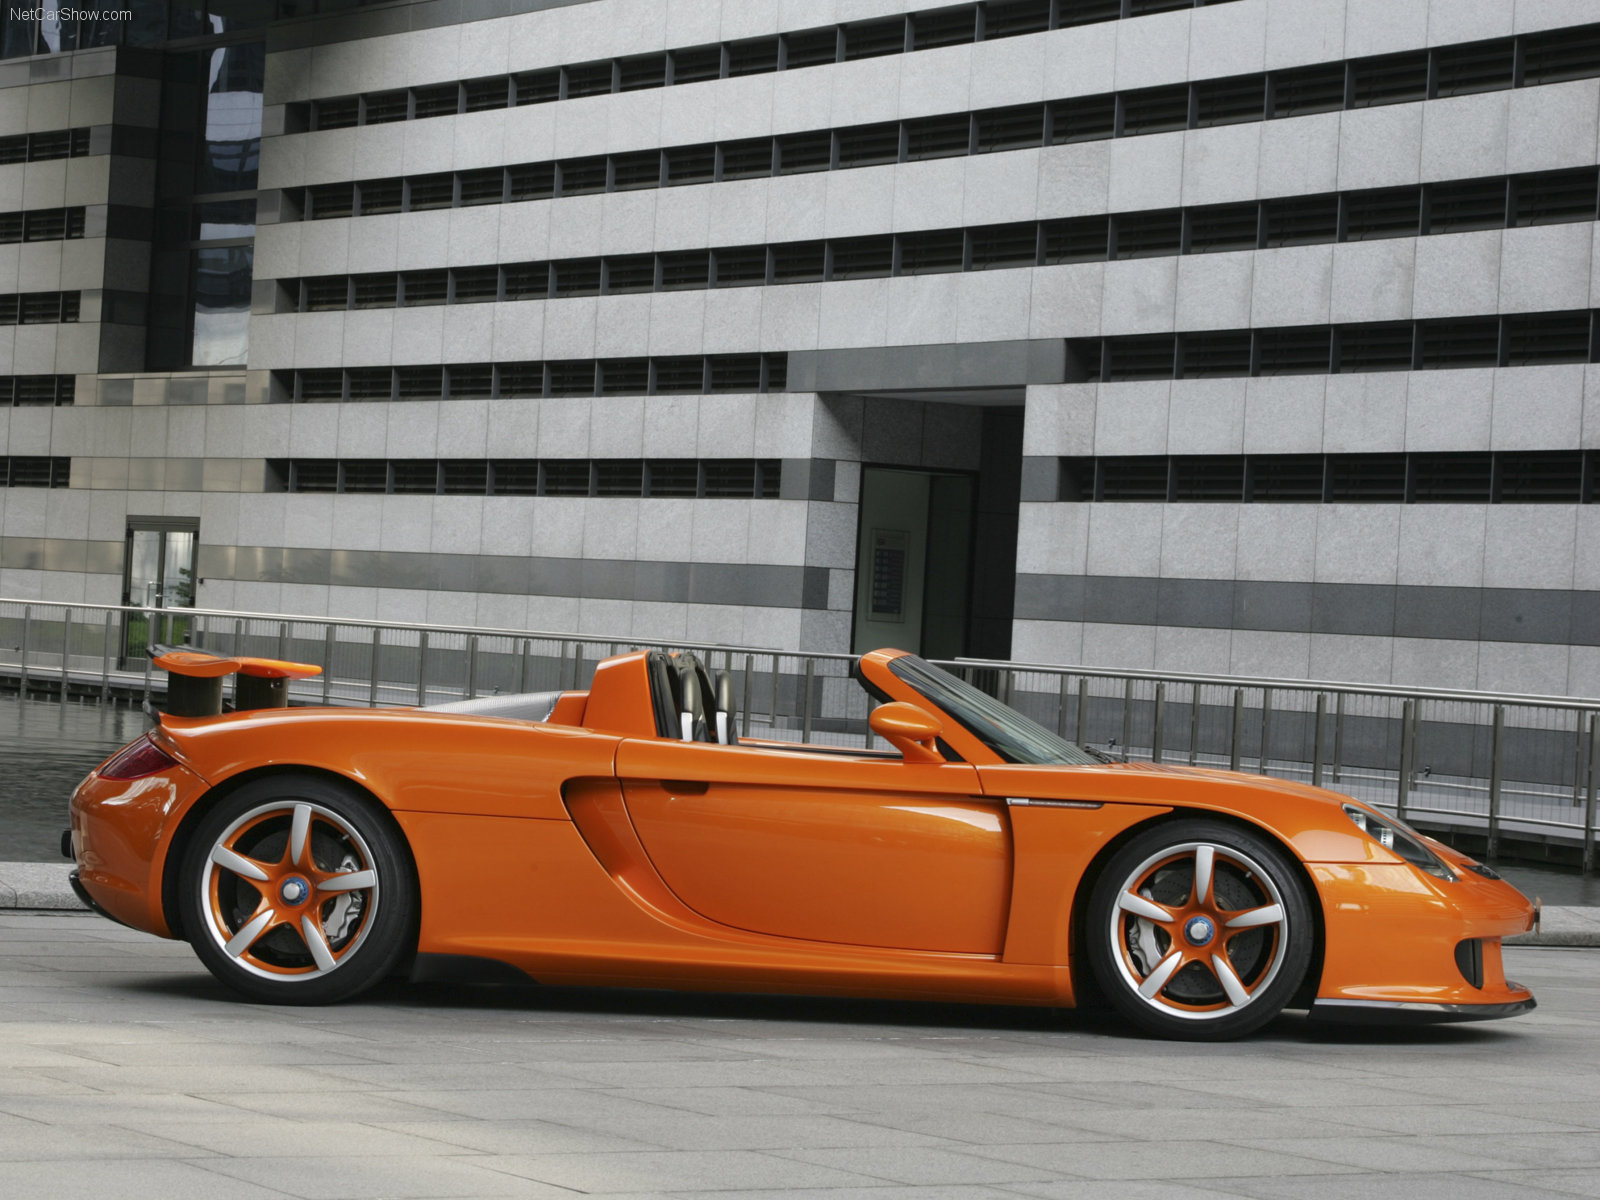 Porsche Carrera GT 2007 Wallpapers